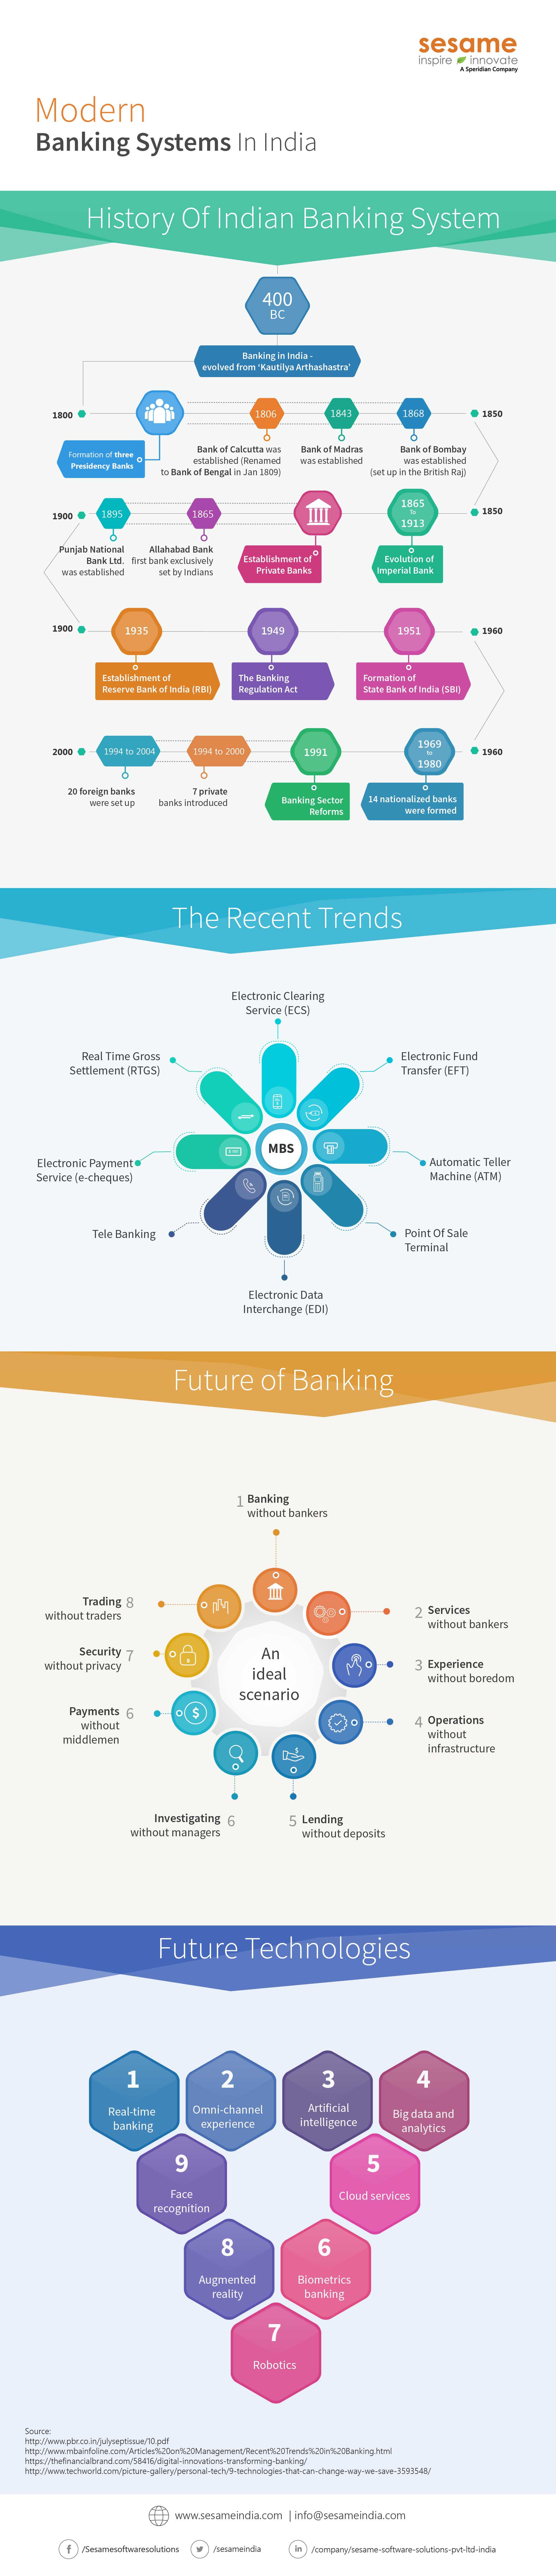 Modern Banking System In India